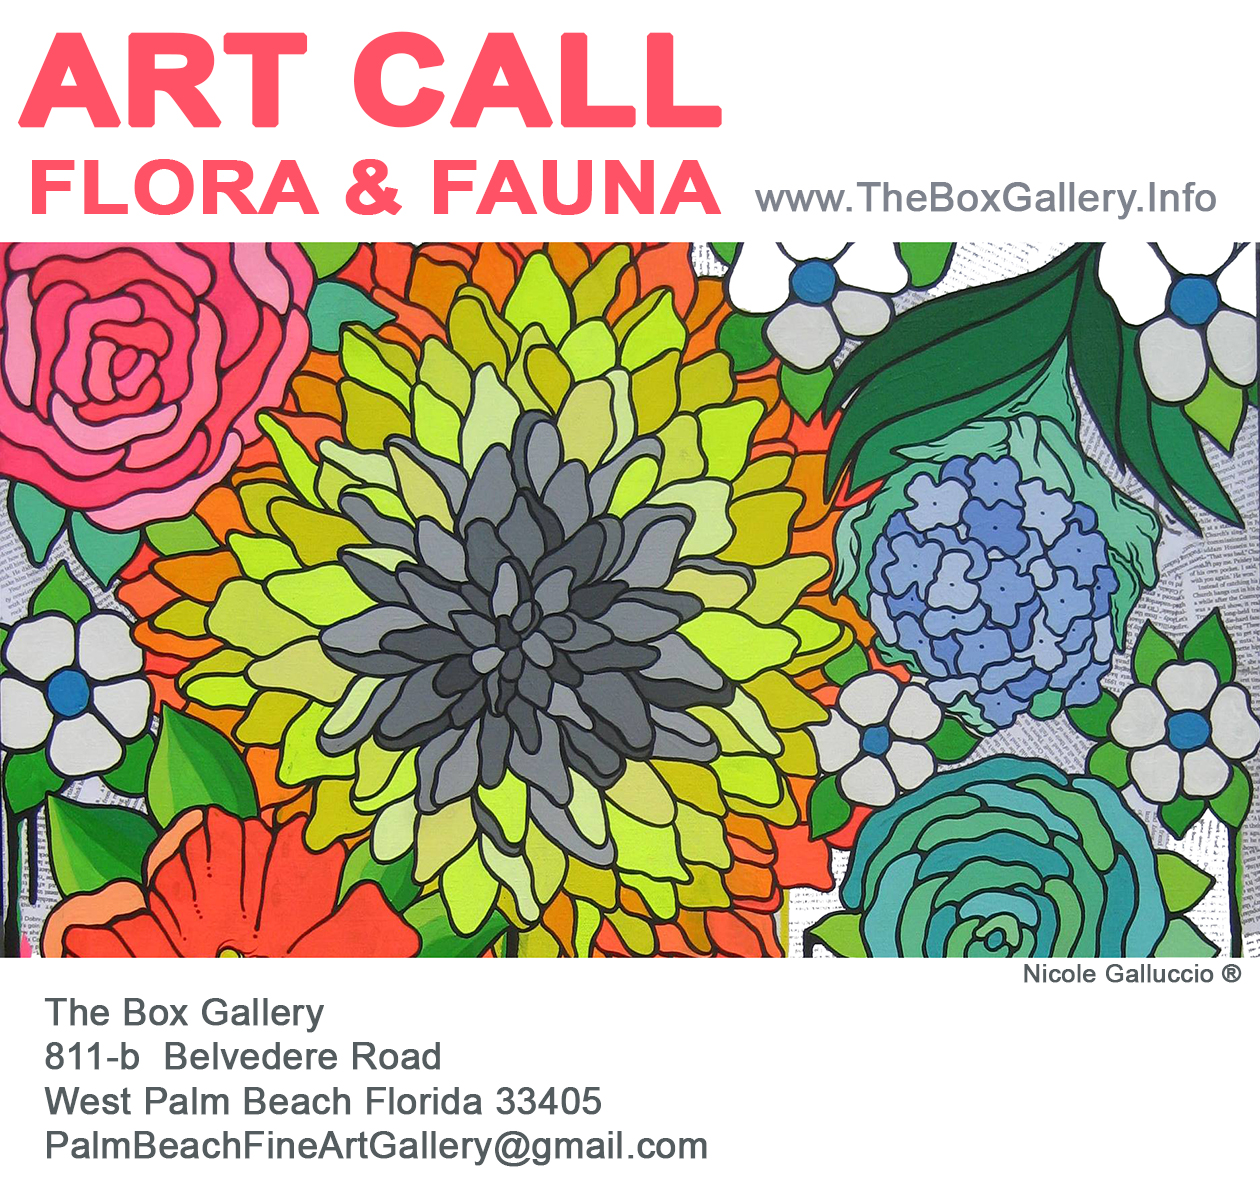 Box Gallery Art Call Flora And Fauna At The Box Gallery